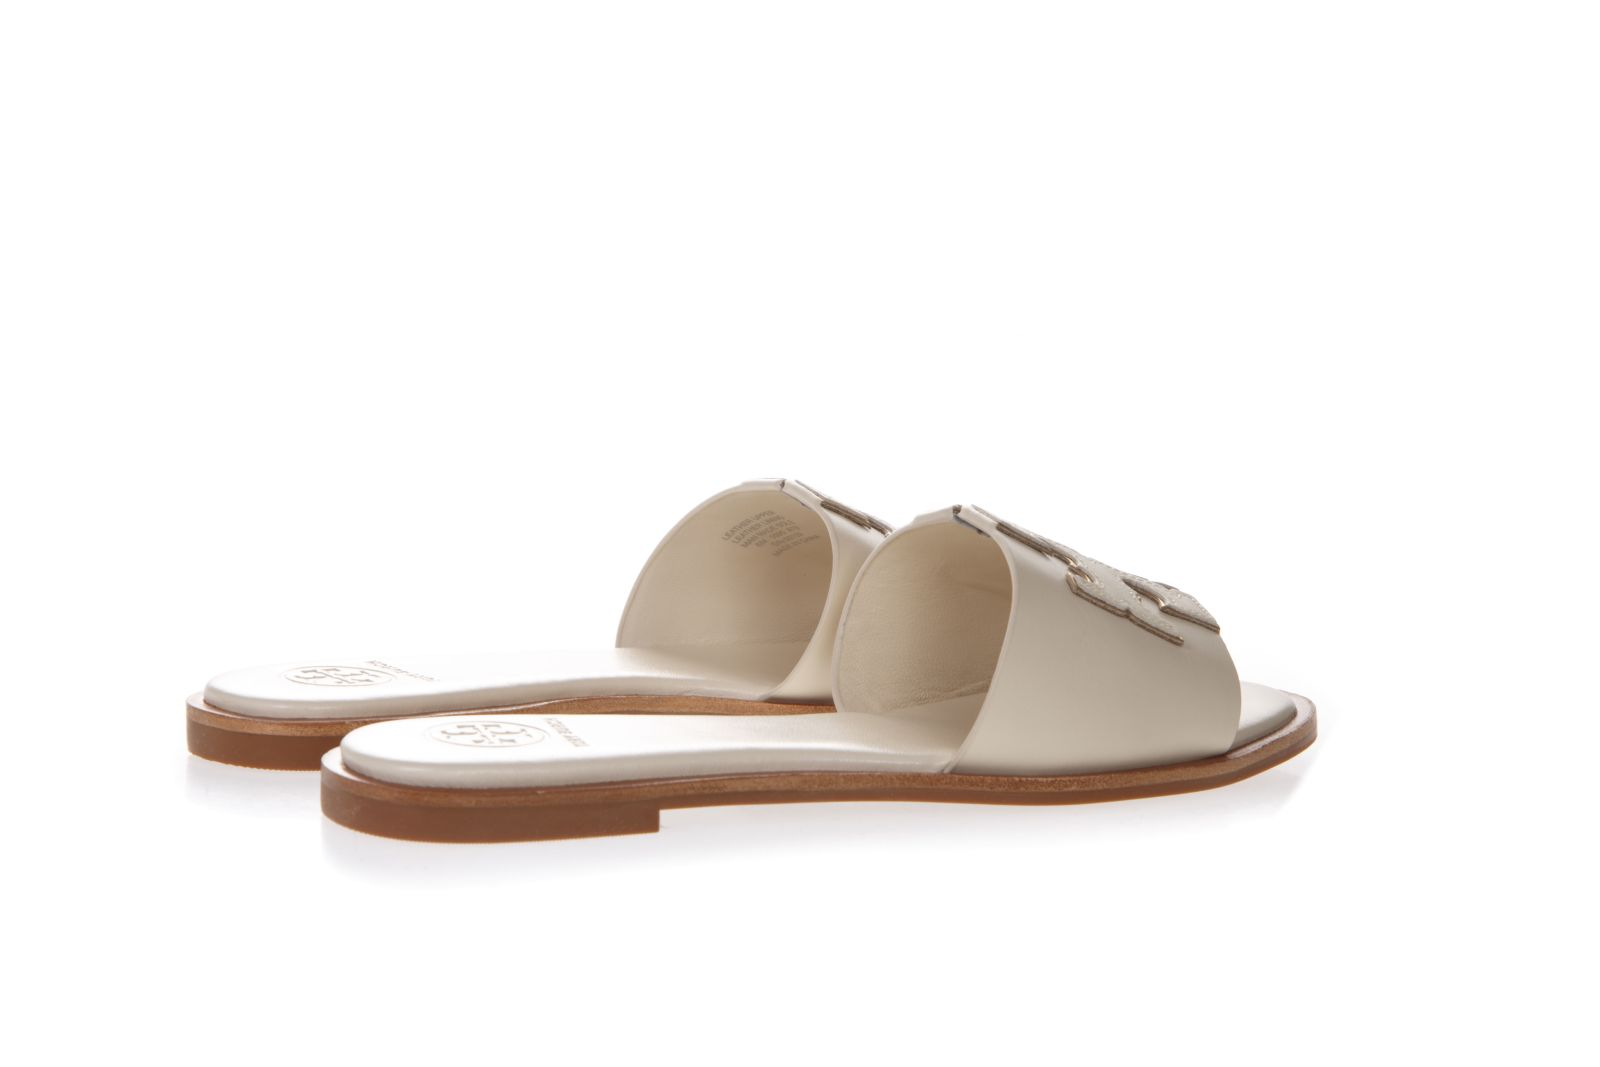 63bbf81fe ... Tory Burch Ines Cream Color Leather Embossed Logo Slipper Sandal - White  ...